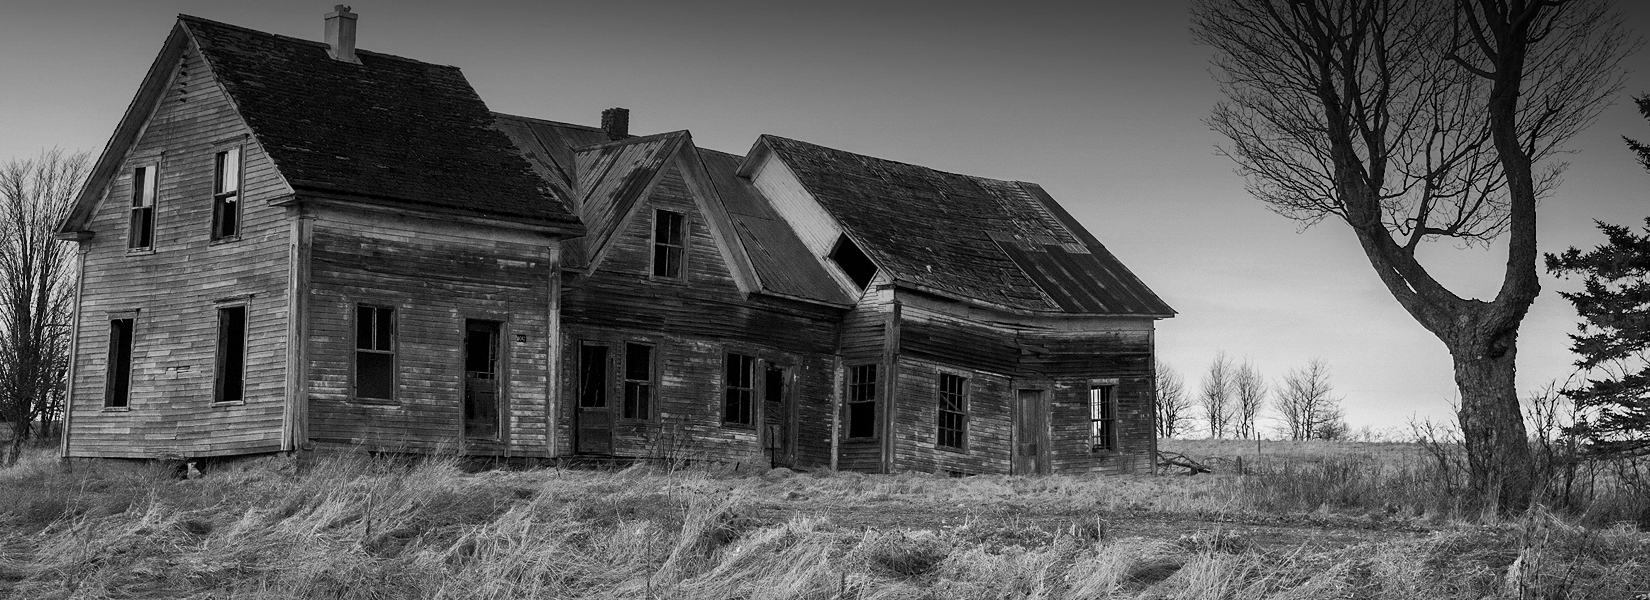 Abandoned houses in the Eastern townships